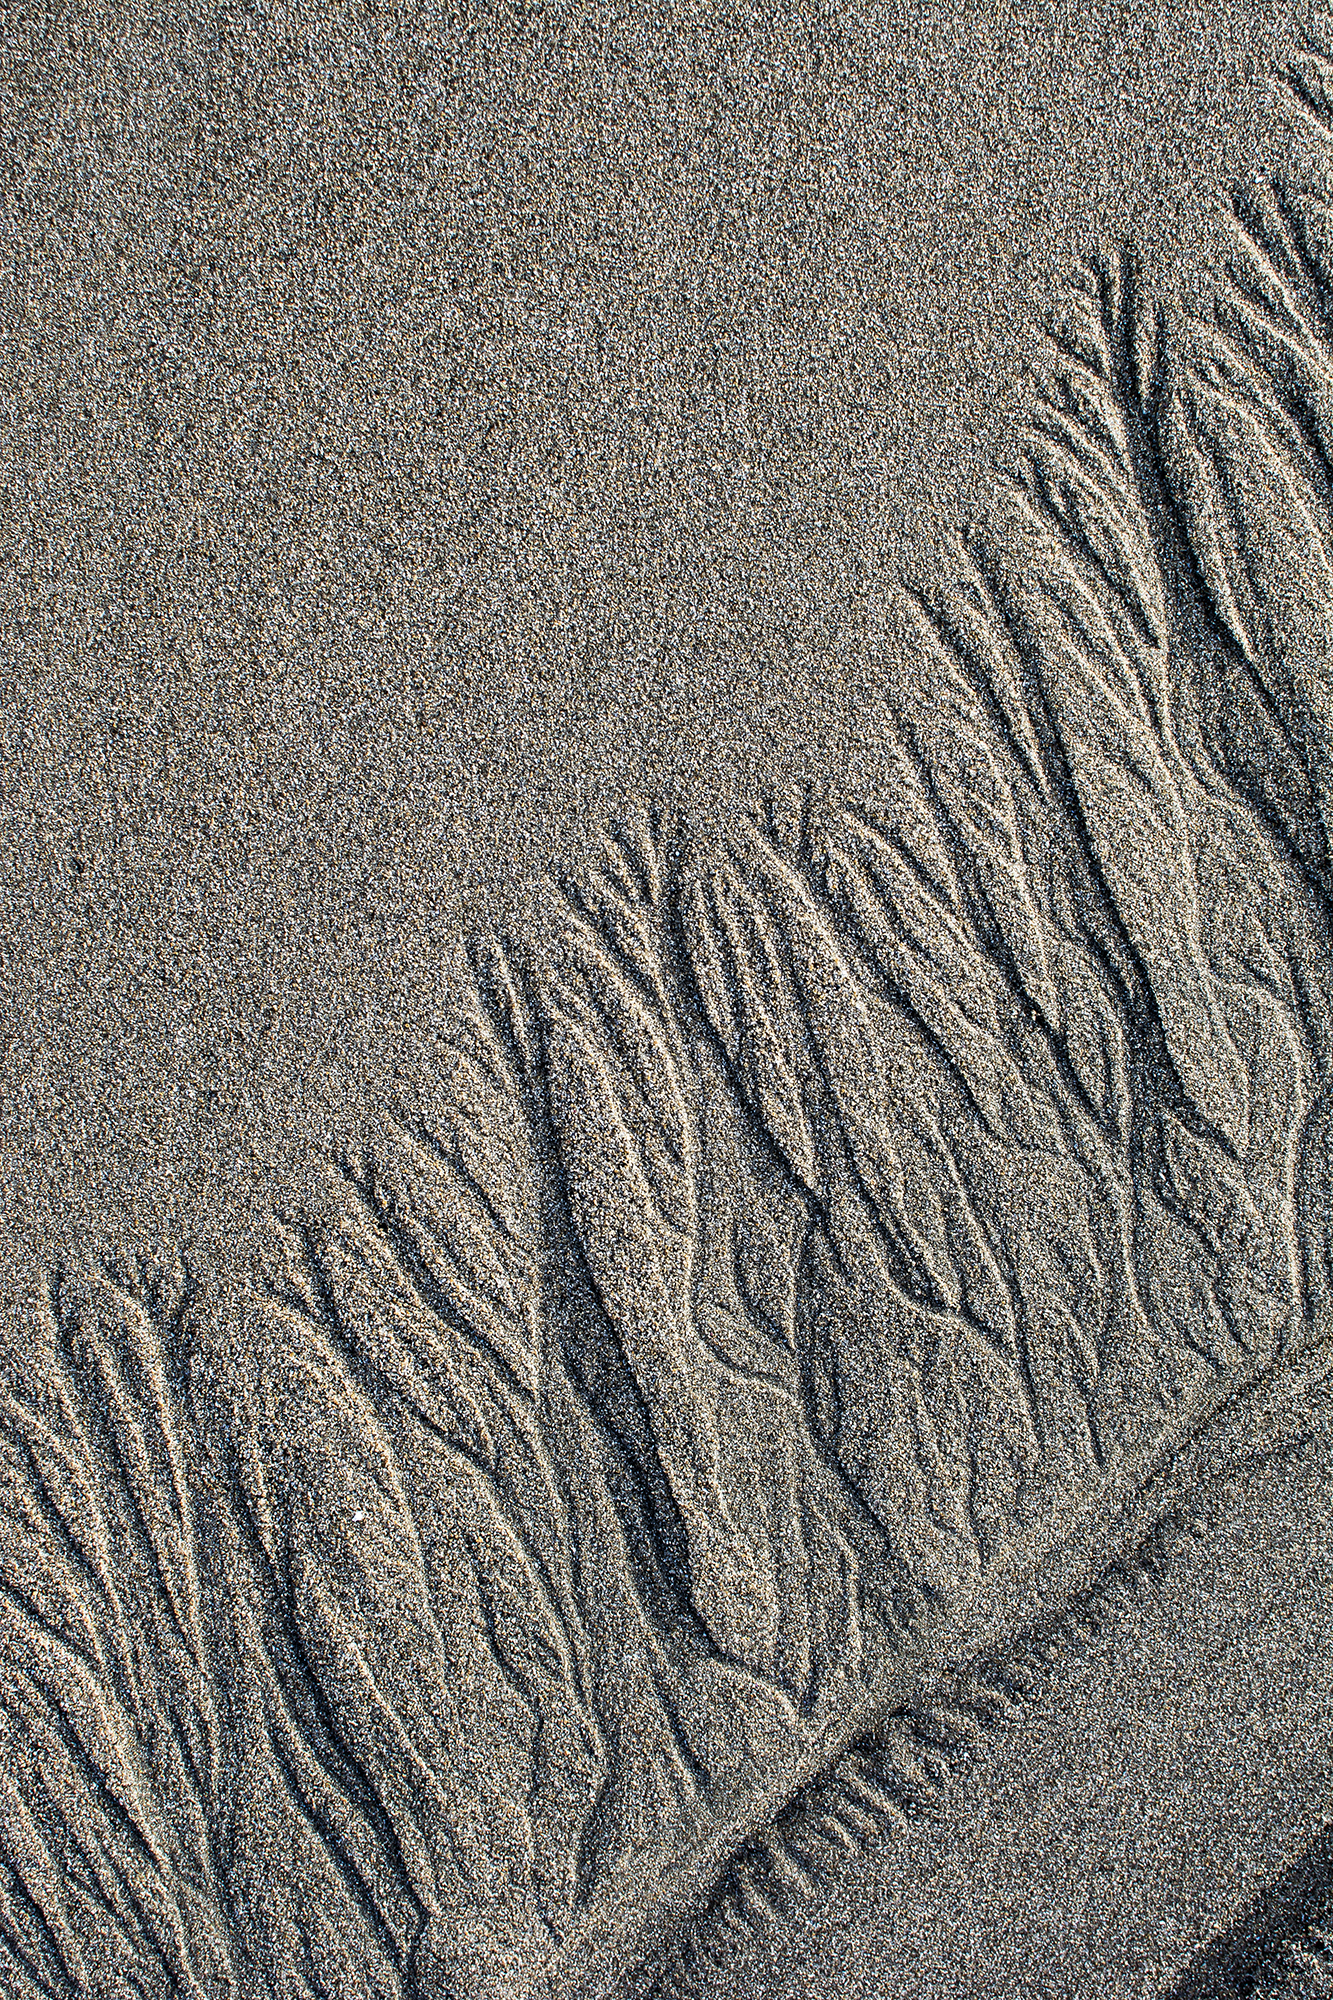 Pic. 2 : Fractal patterns appear in the sand of Schooner Gulch State Beach